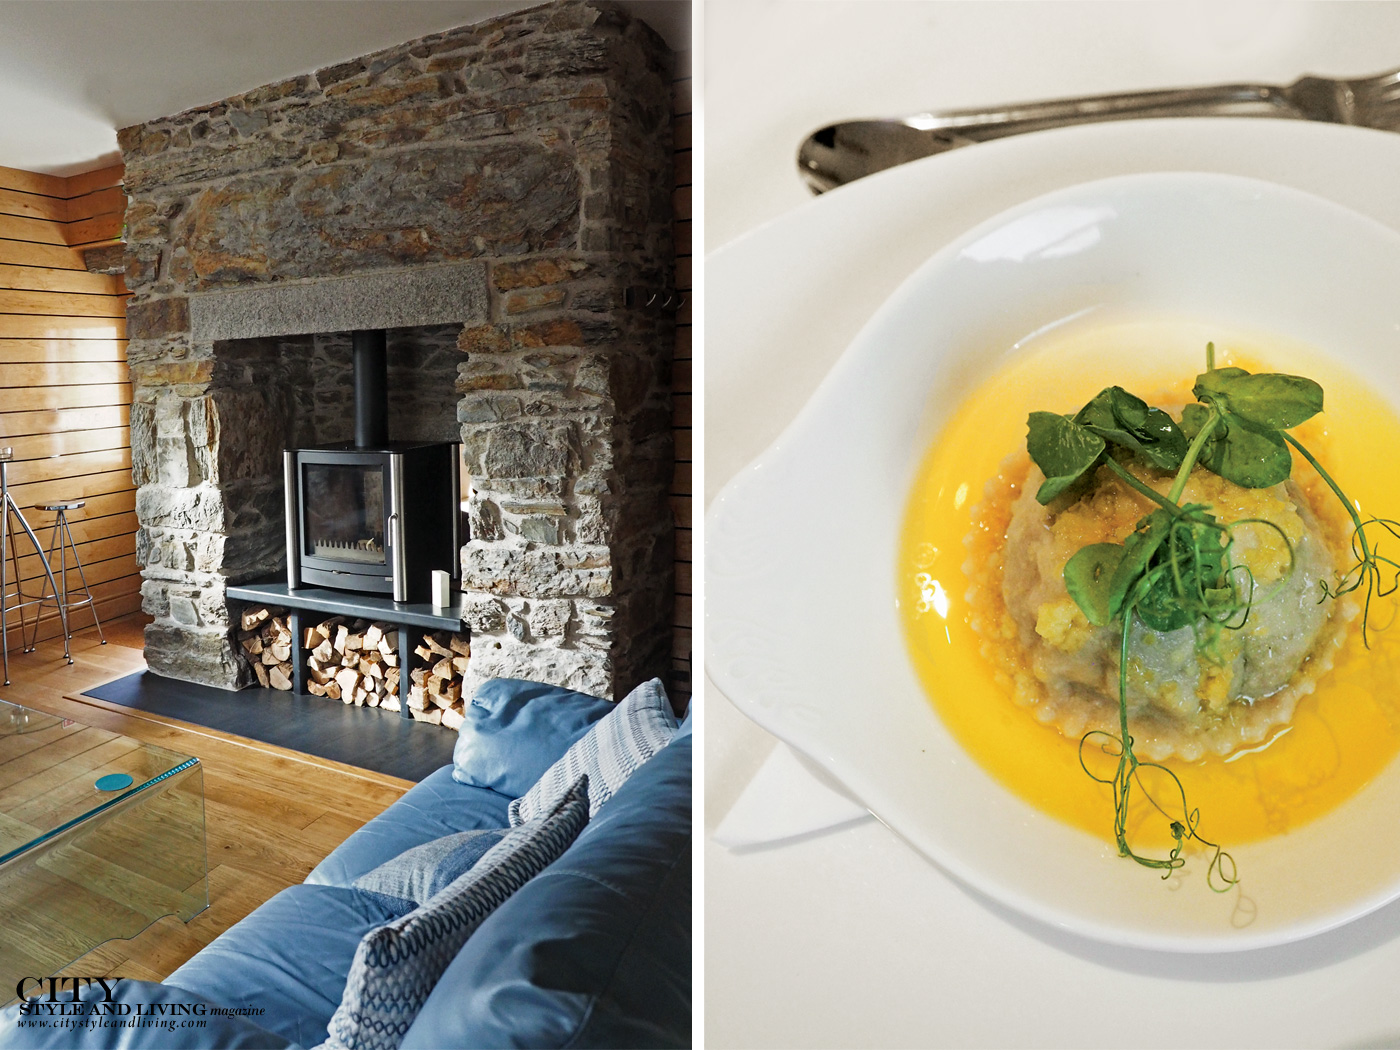 City Style and Living Magazine Winter 2018 Wales Hotels Coes Faen Luxury Spa Lodge nook and pasta